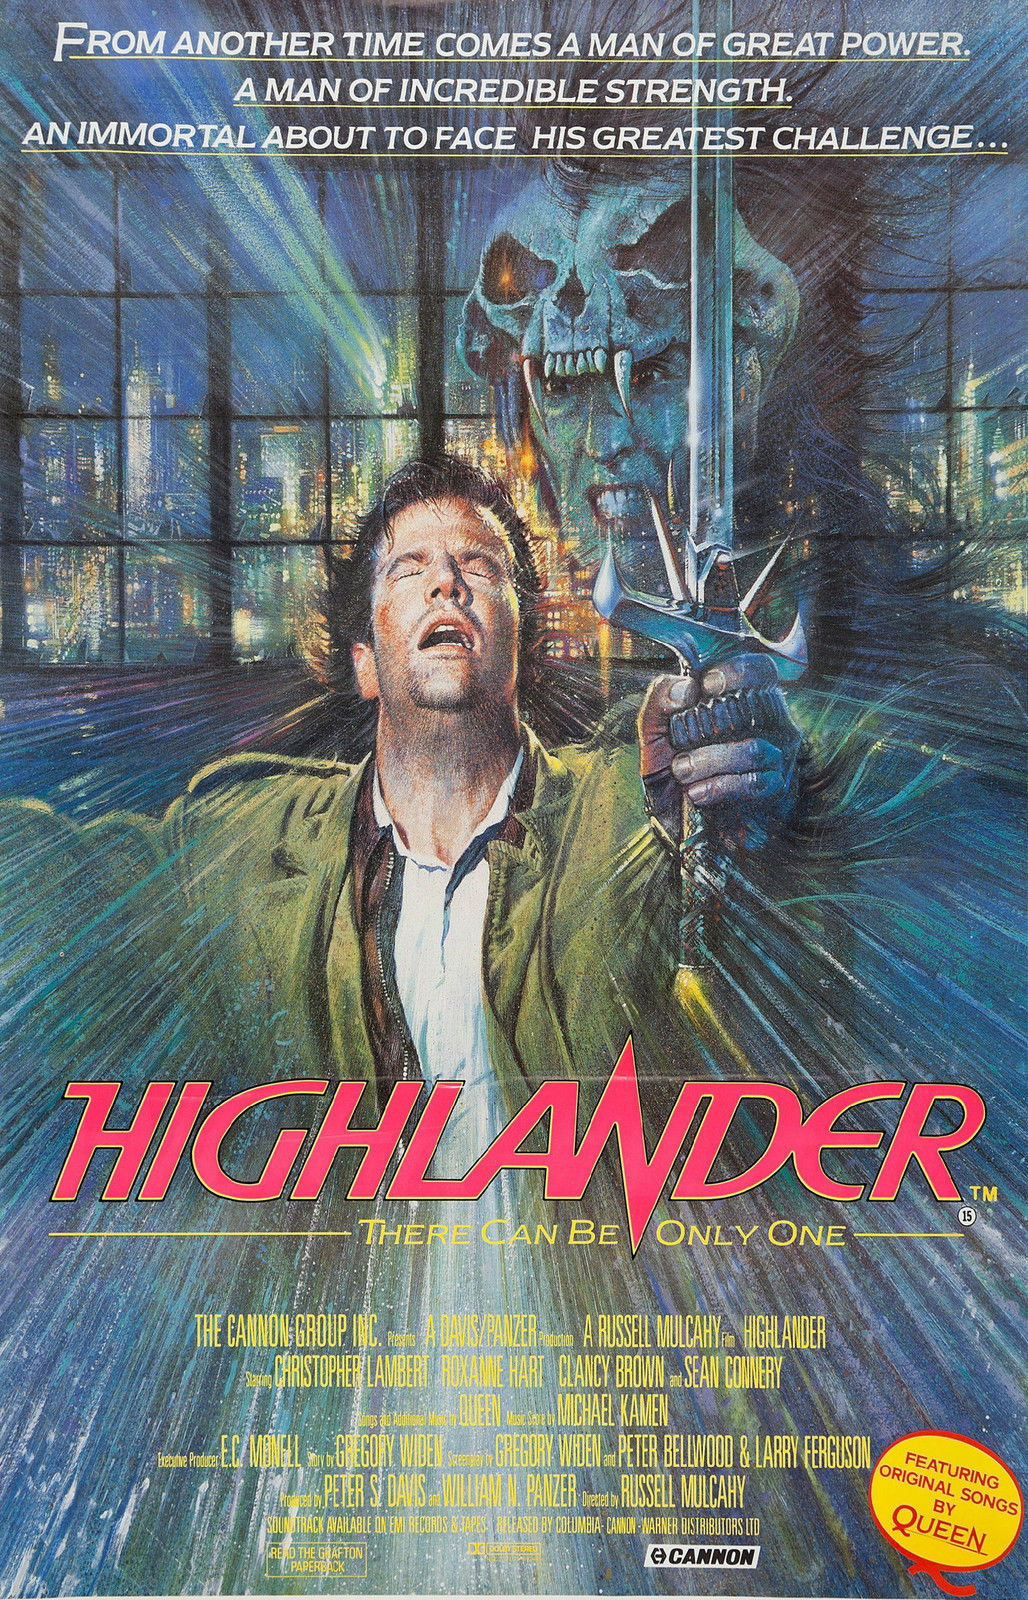 72731-HIGHLANDER-Movie-Rare-Sci-Fi-Wall-Print-Poster-Affiche